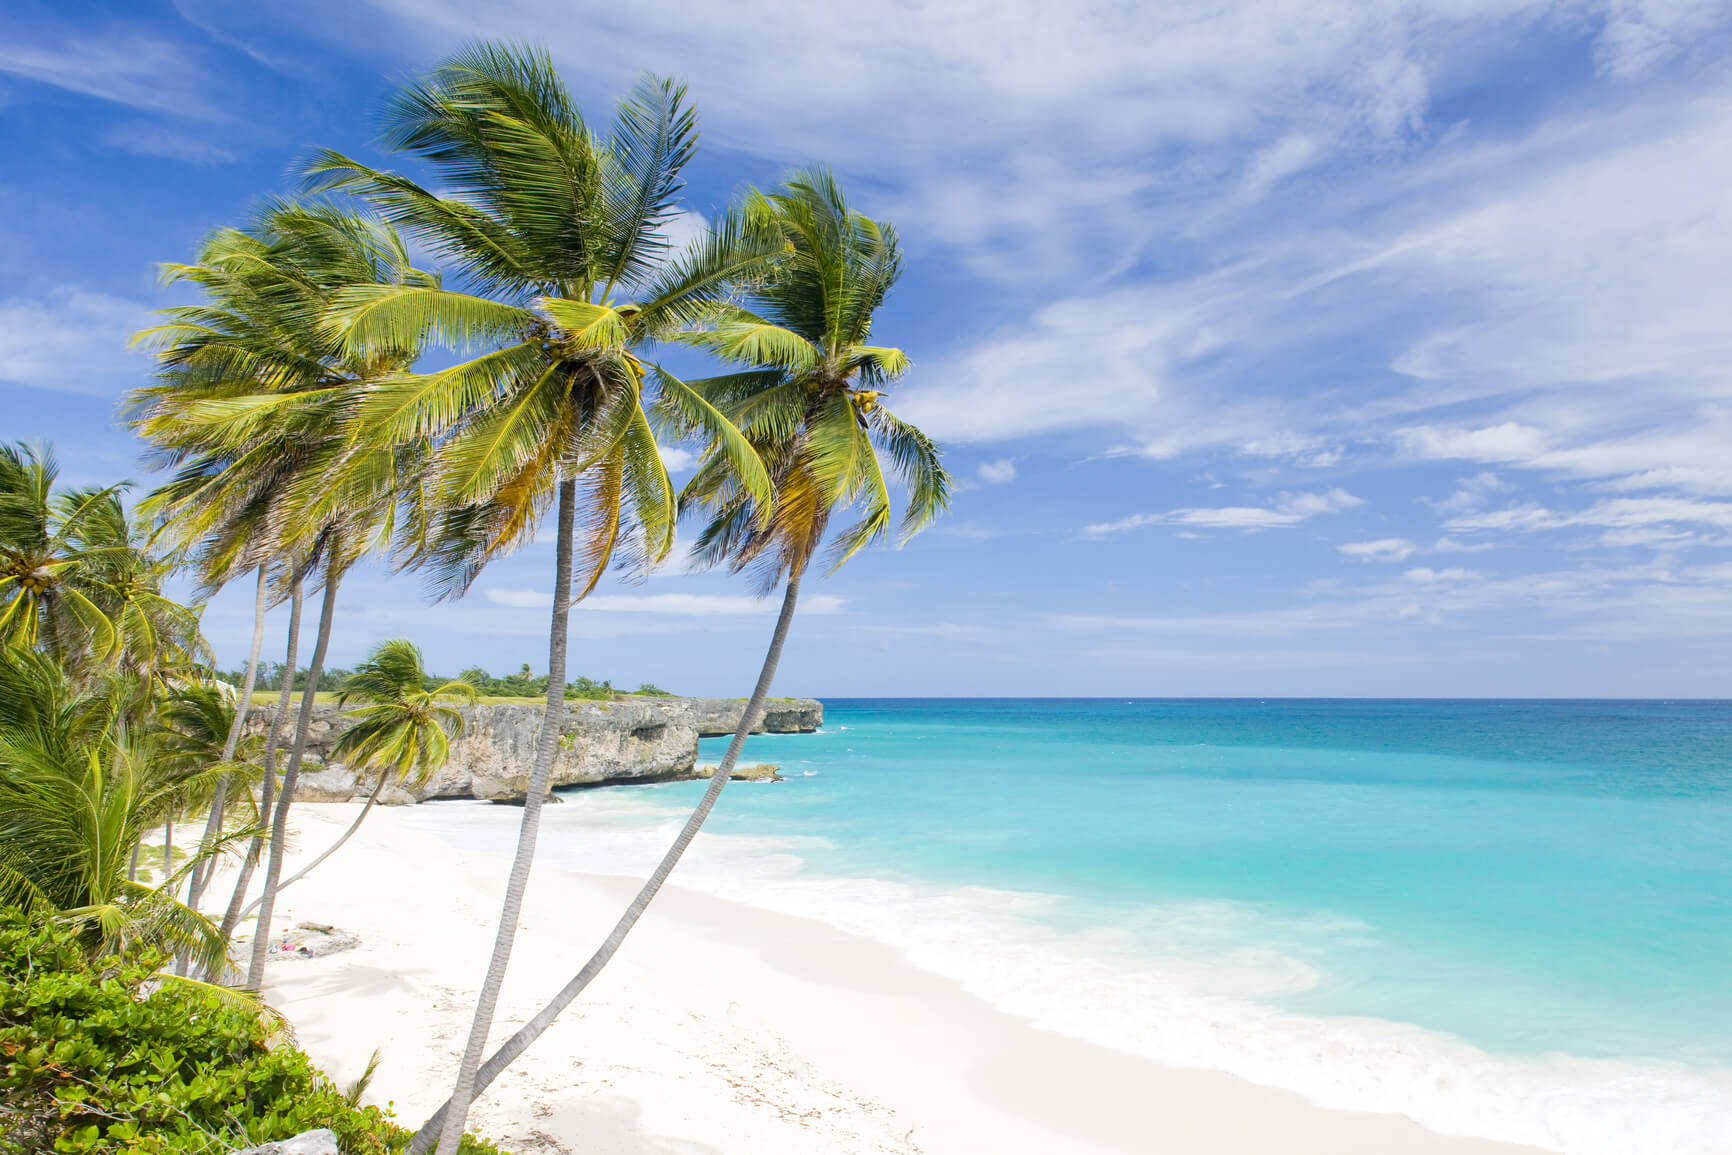 Non-stop from UK cities to Barbados for only £289 roundtrip